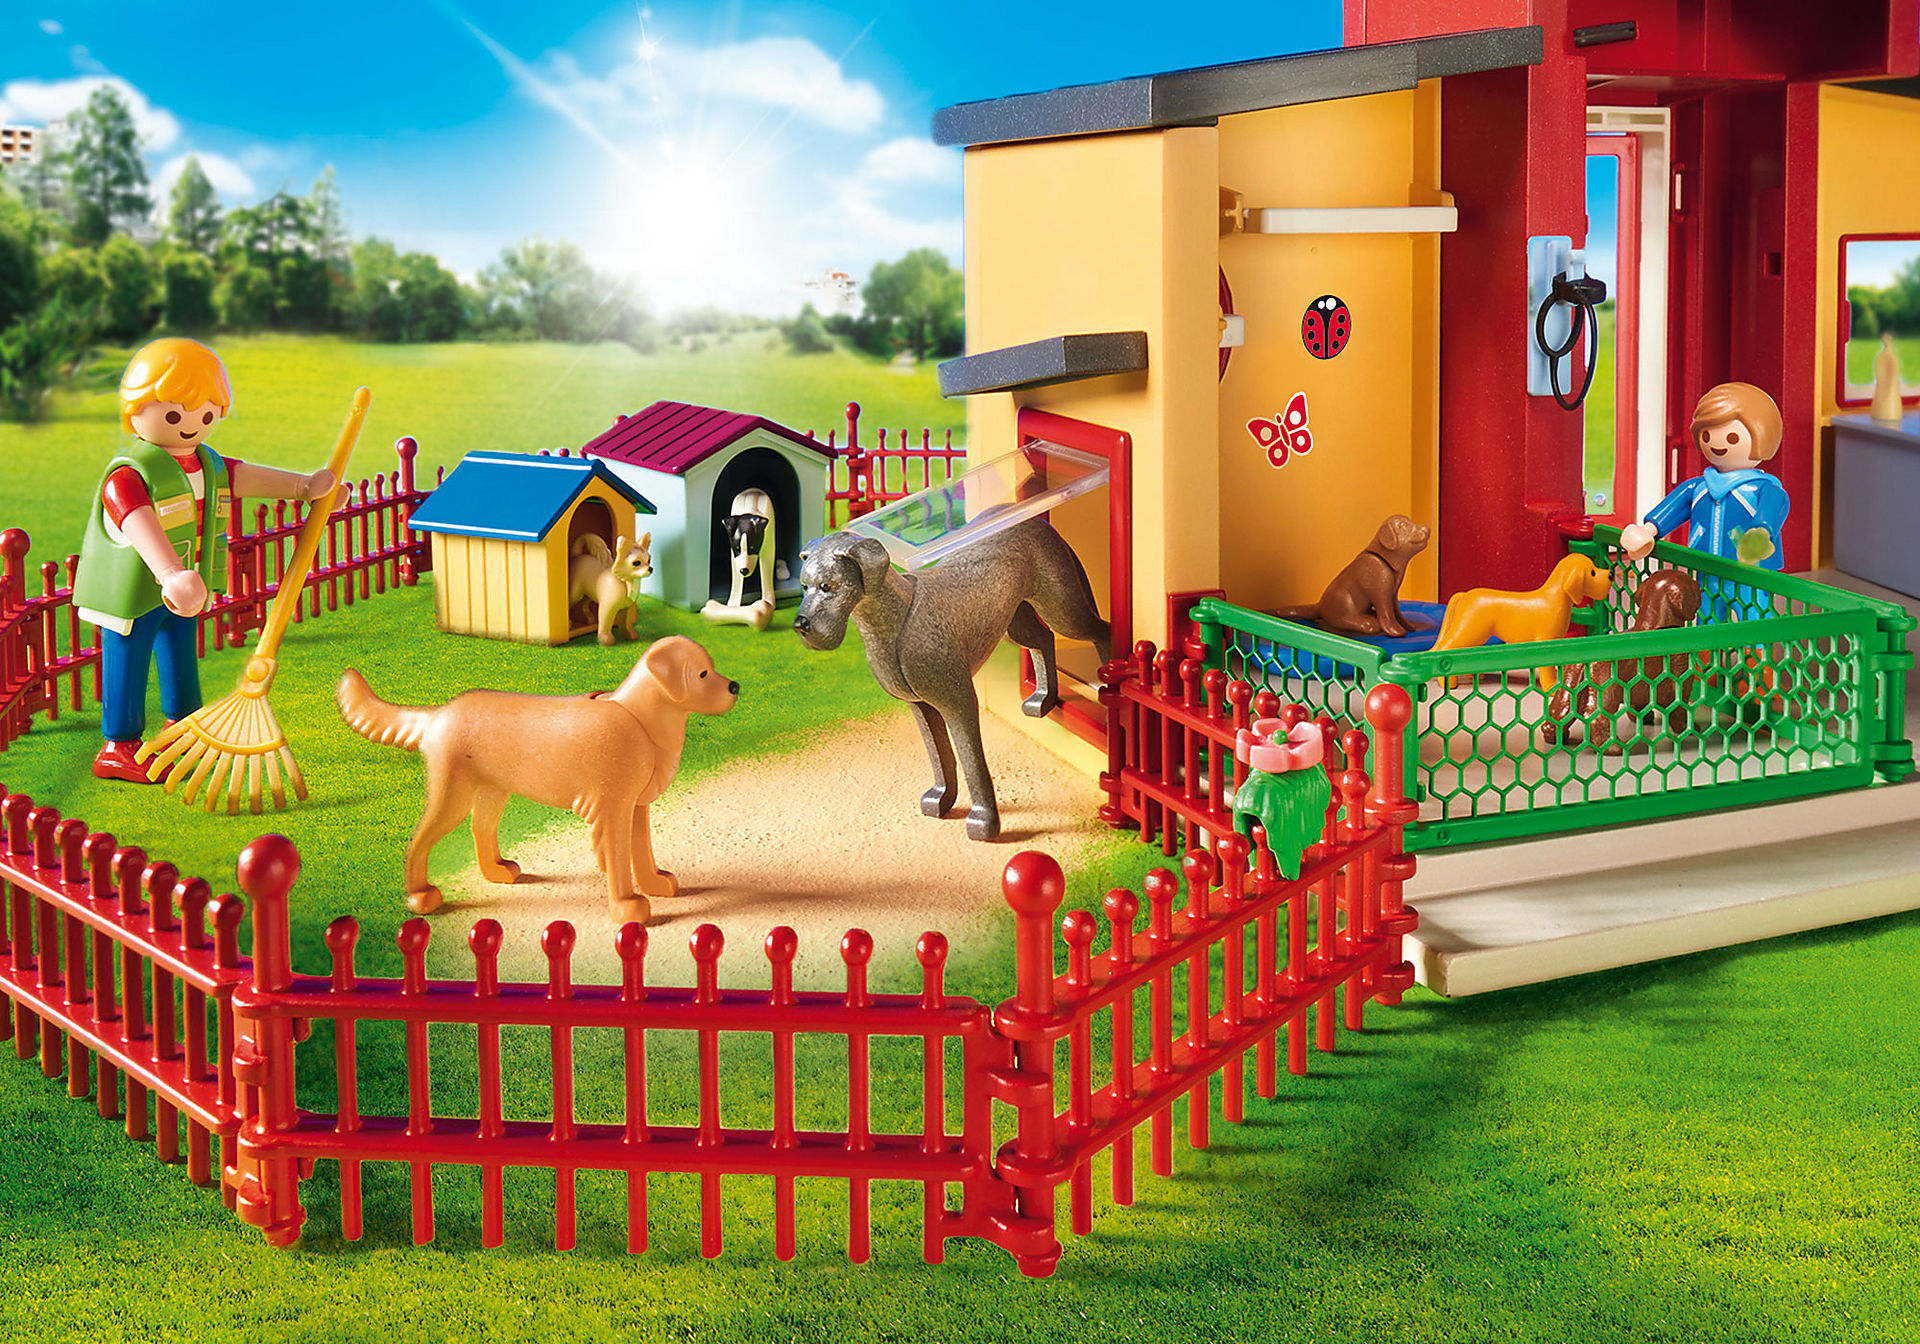 http://media.playmobil.com/i/playmobil/9275_product_extra1/Tiny Paws Pet Hotel